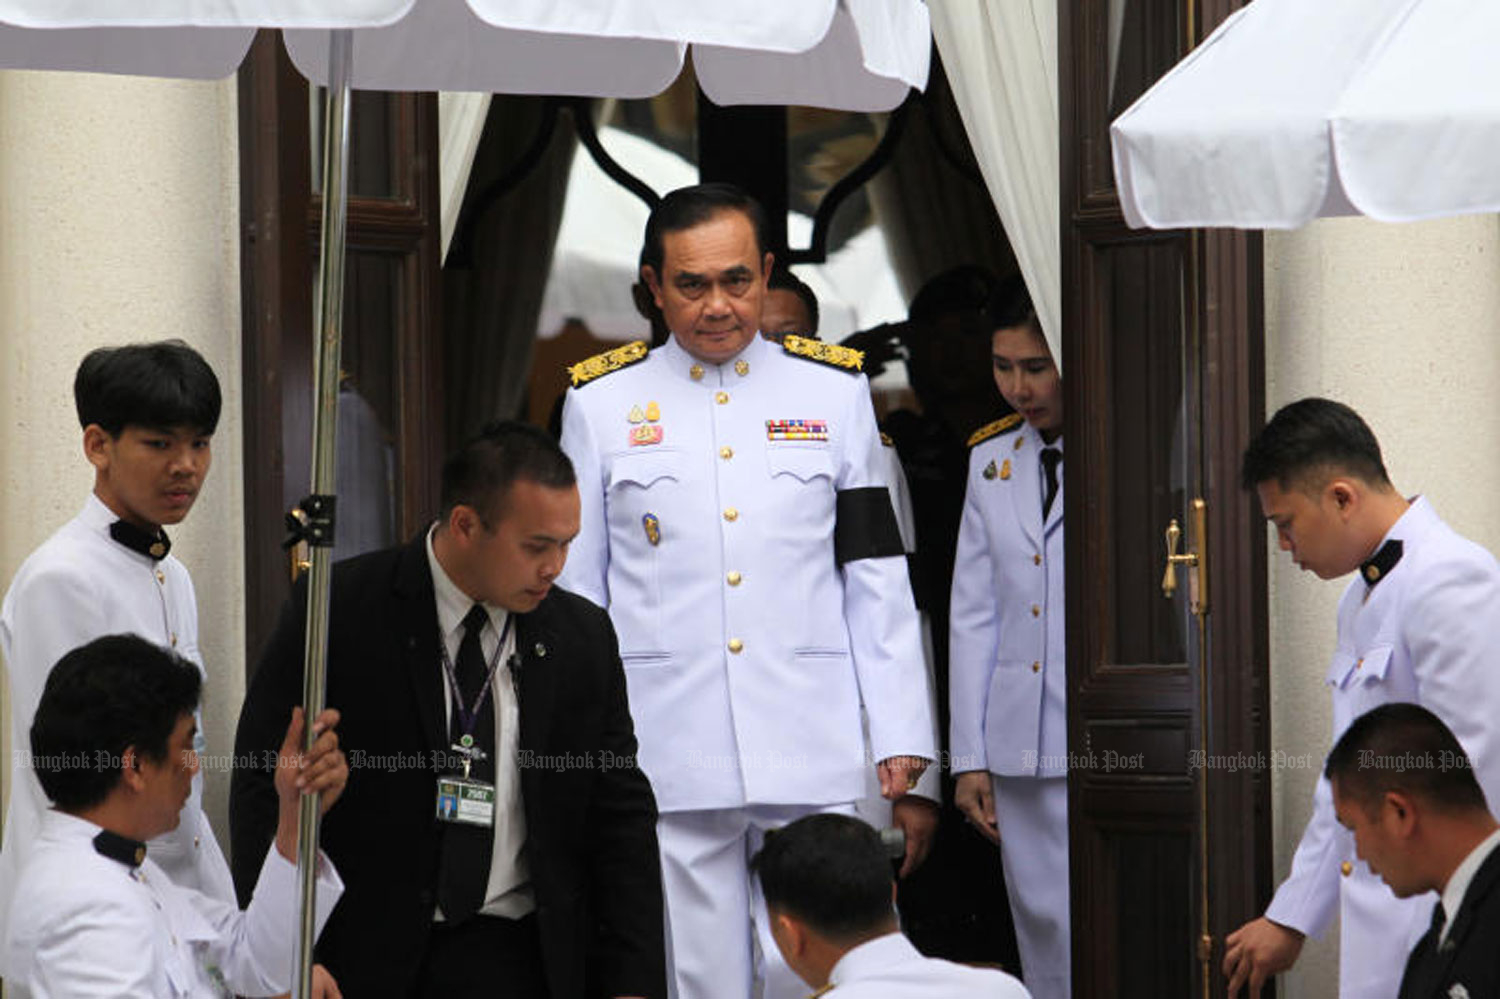 Gen Prayut Chan-o-cha leaves the Pakdibodin Building after receiving a royal command appointing him the prime minister in Government House in Bangkok on Tuesday. (Photo by Wichan Charoenkiatpakul)